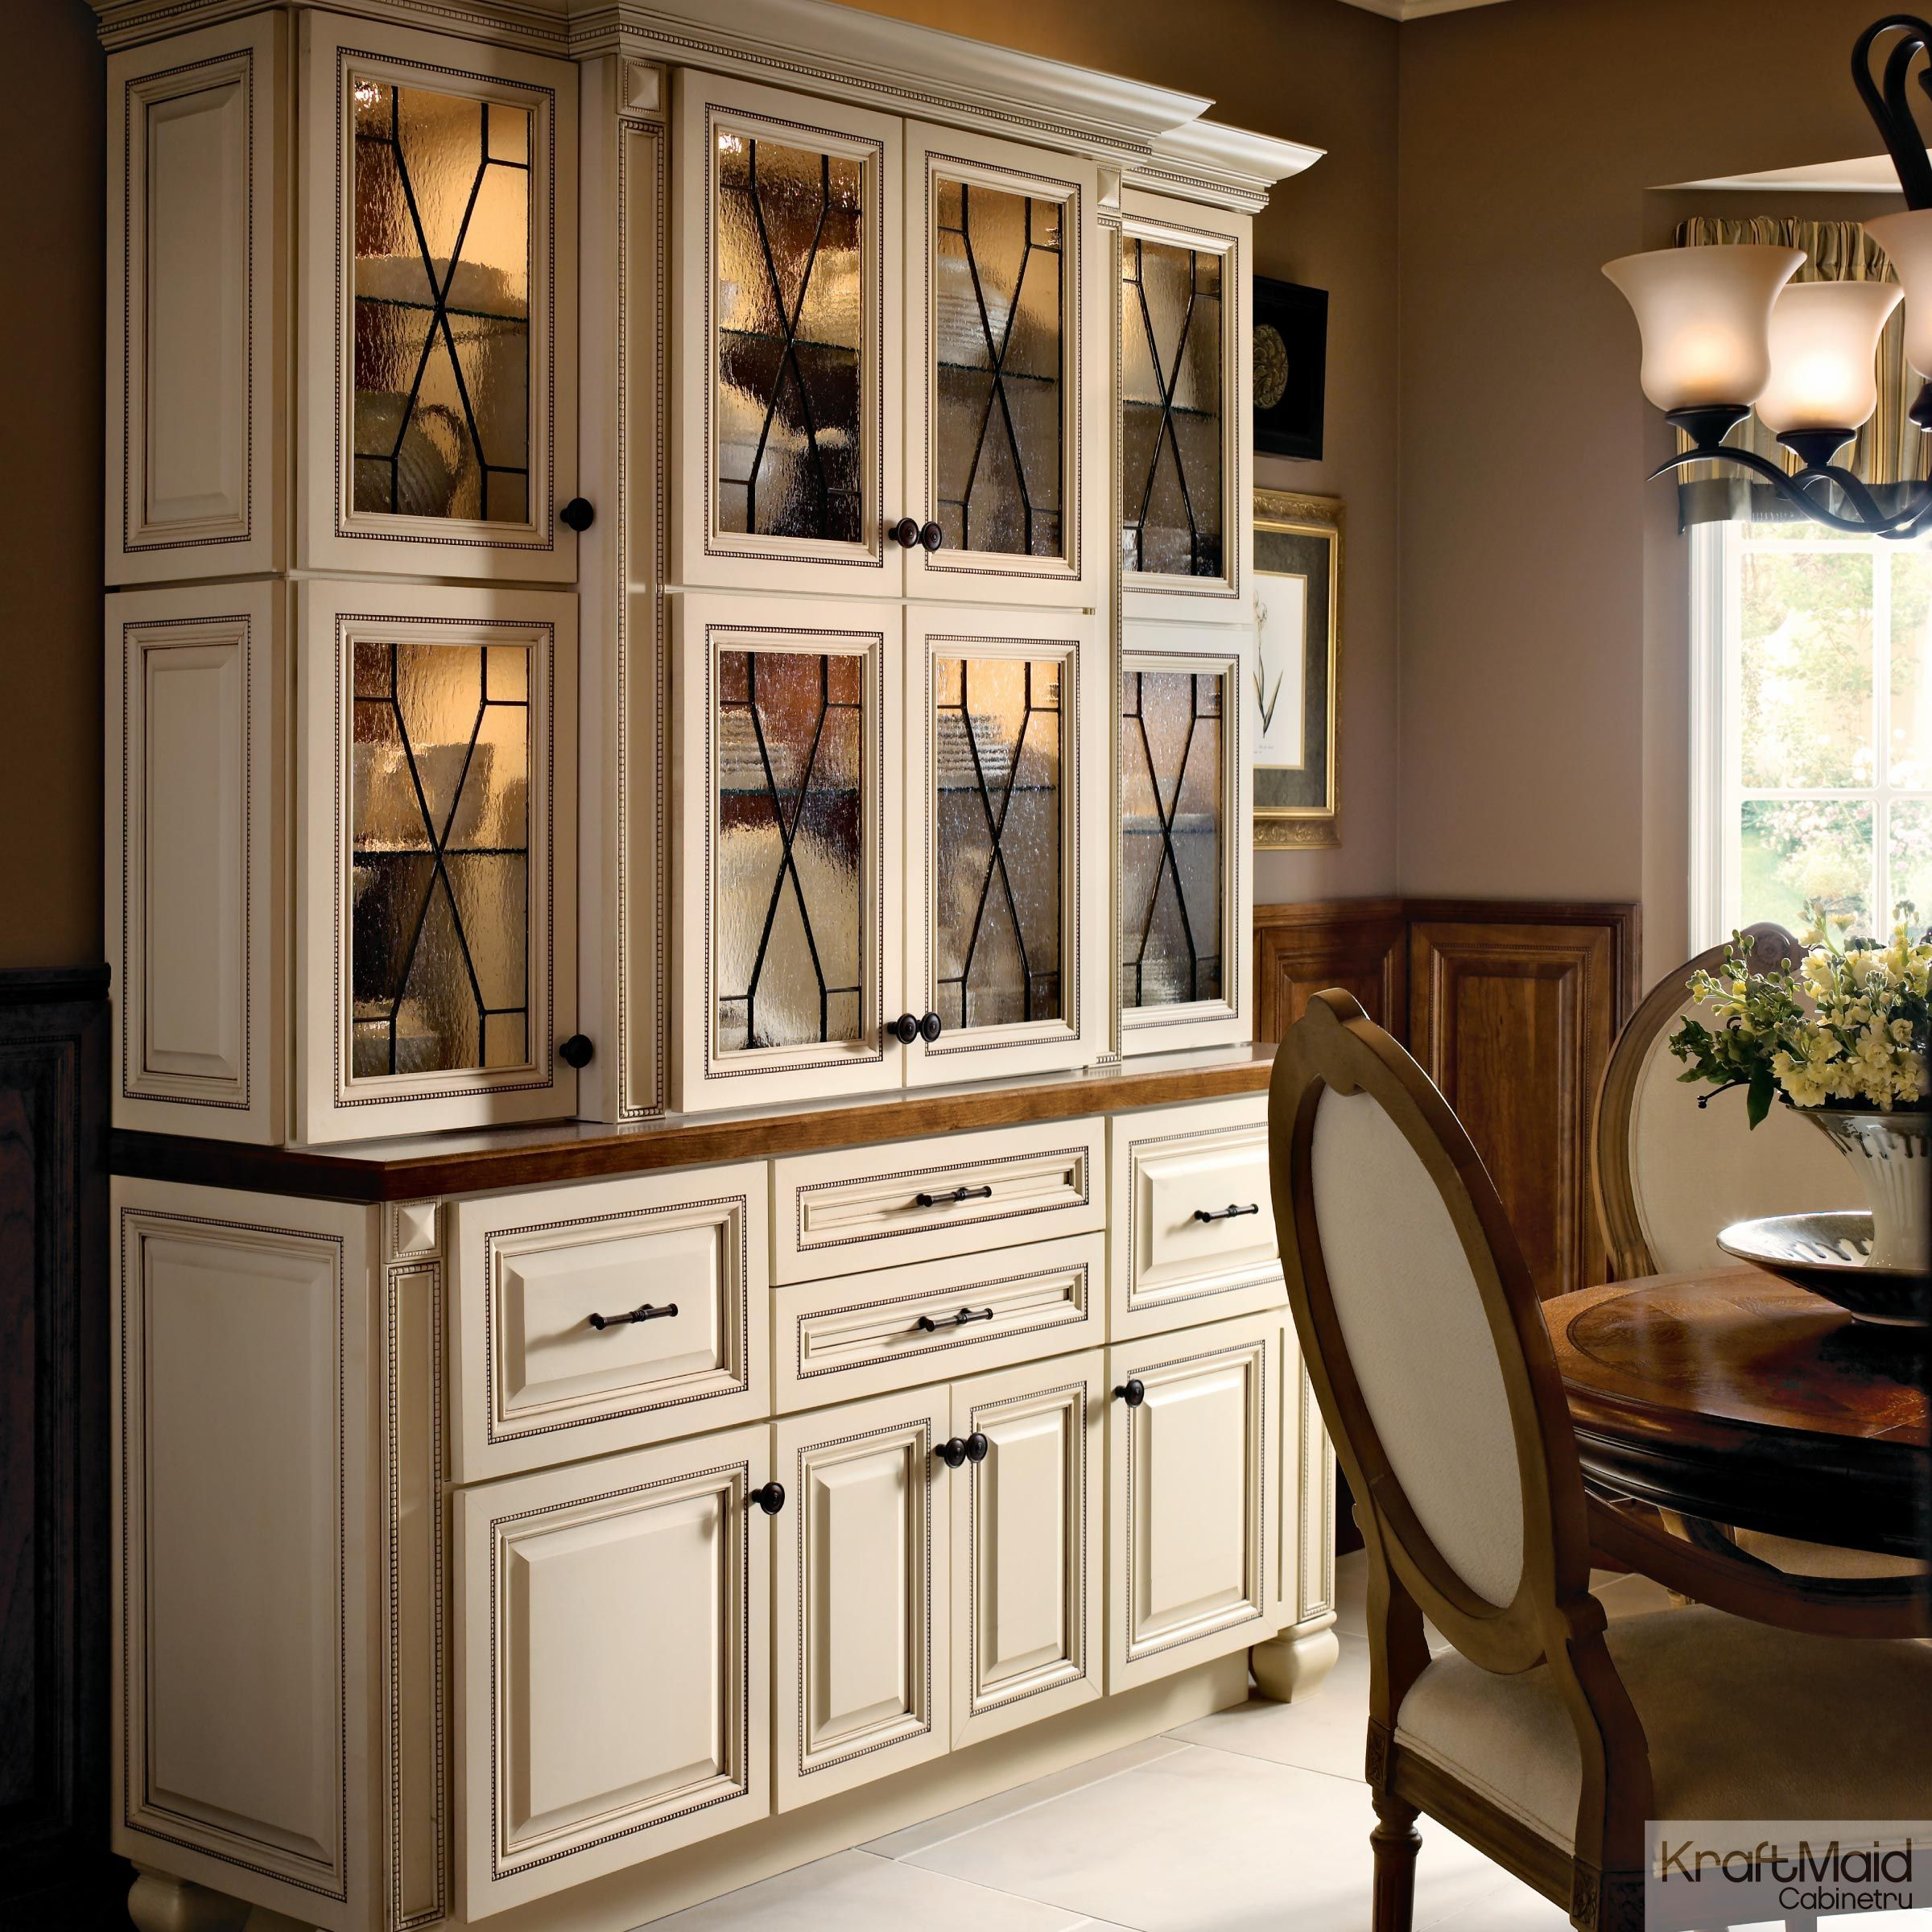 Pin On Cabinetry Inspiration